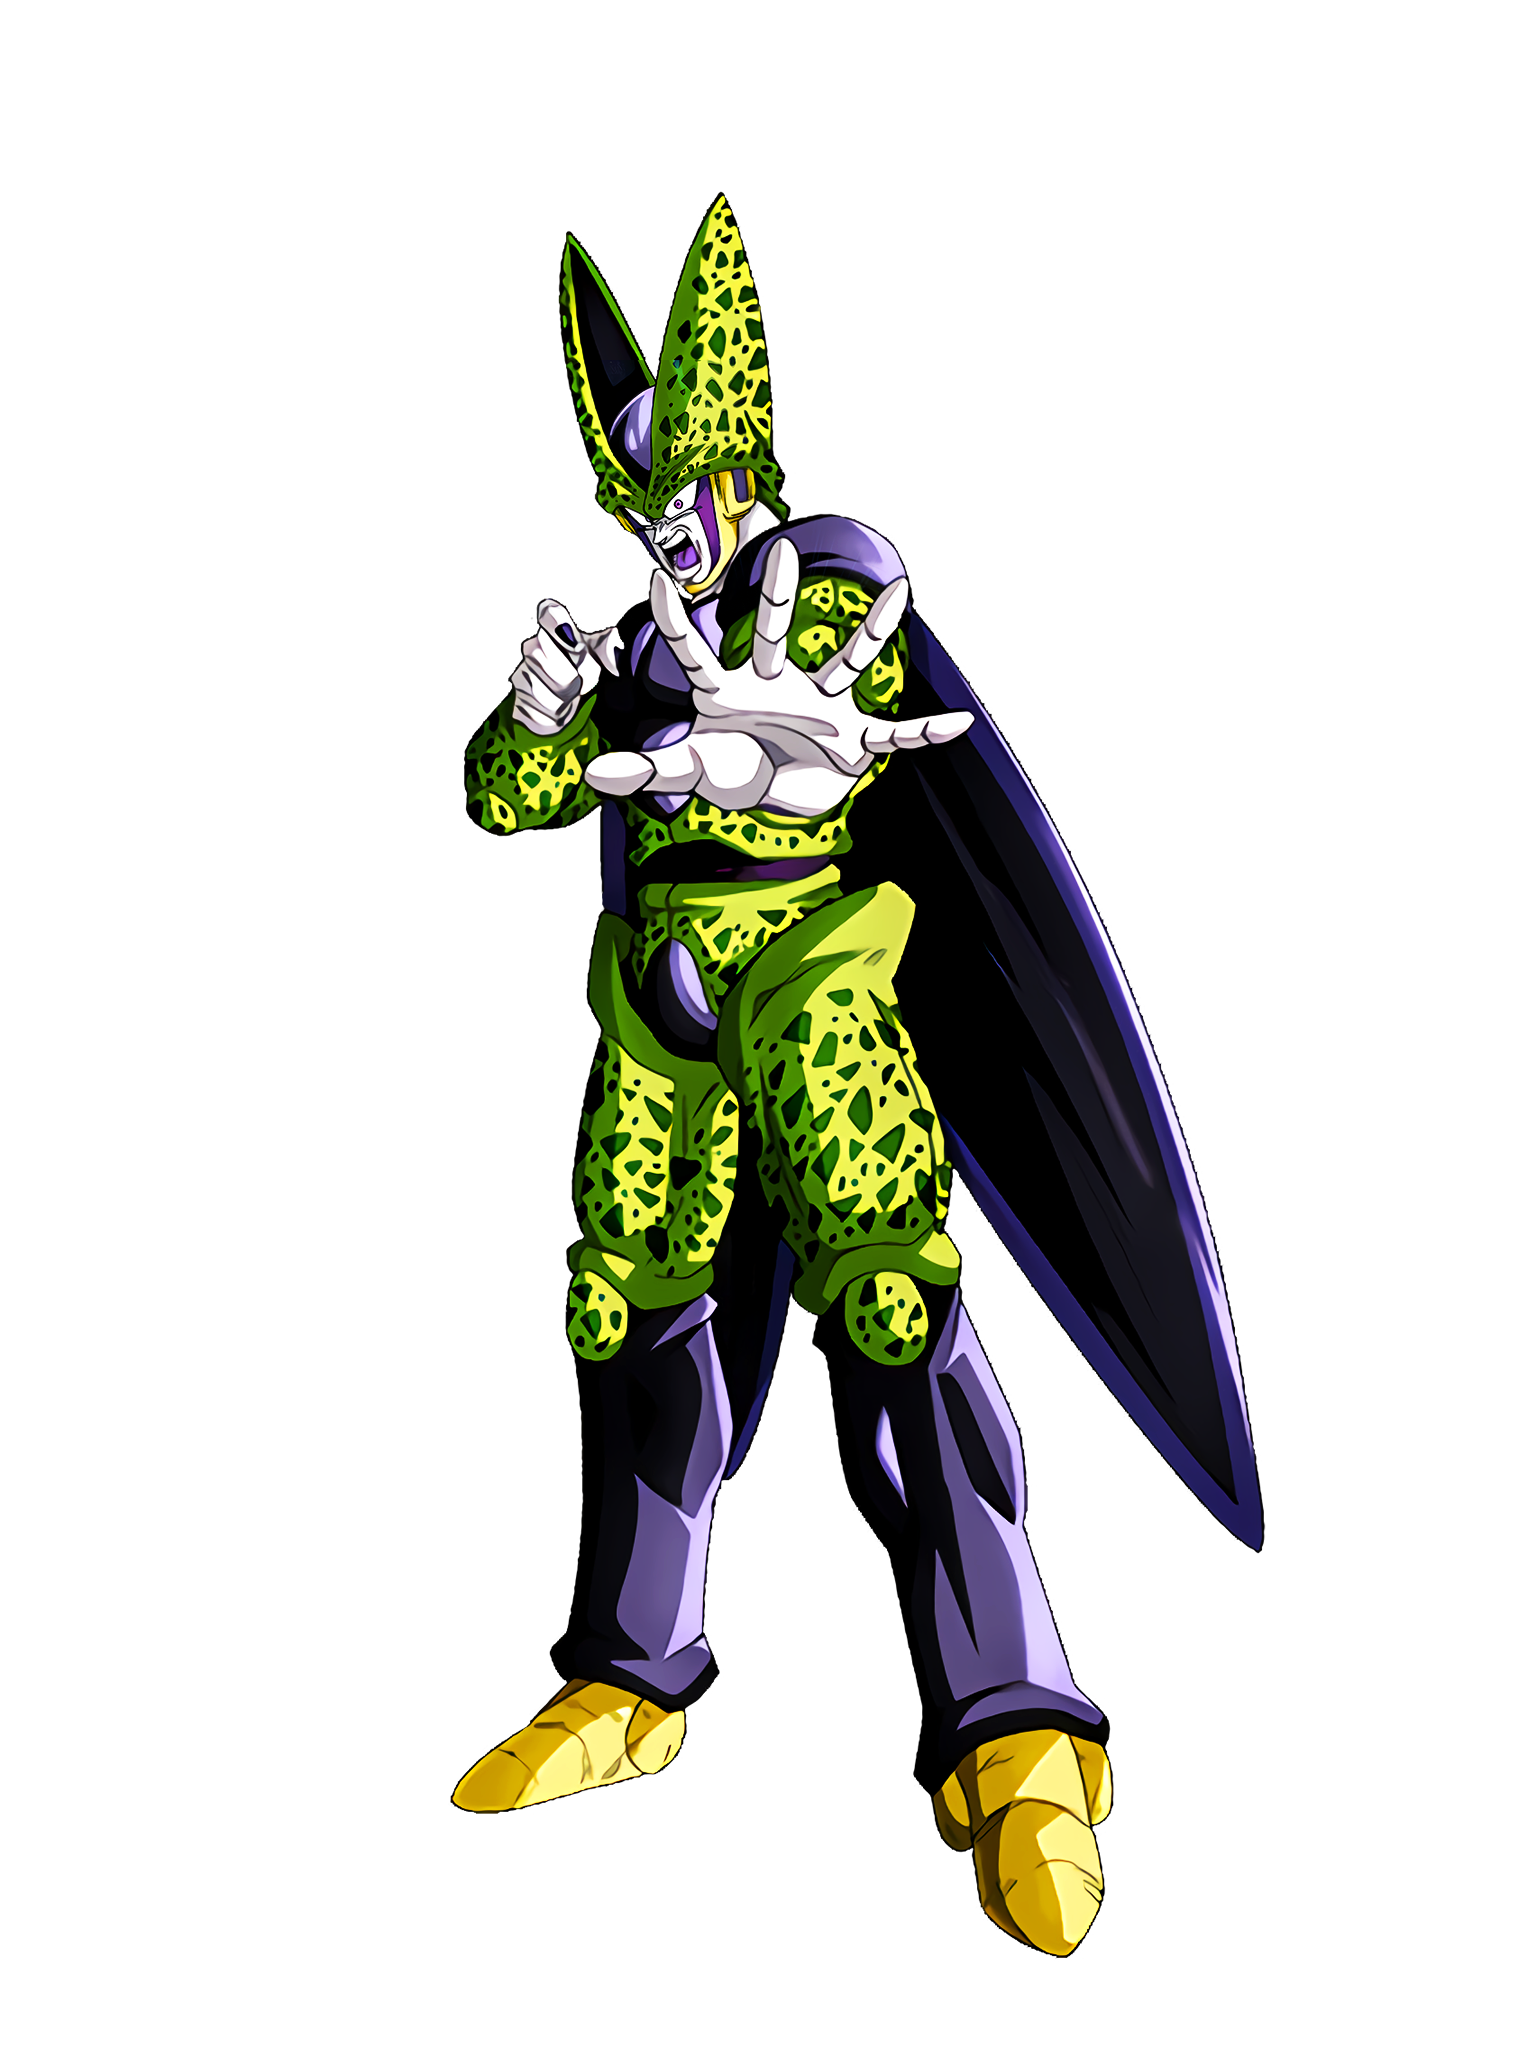 Tremendous Power of Tremor Cell Perfect Form Render (Dragon Ball Z Dokkan Battle) .png